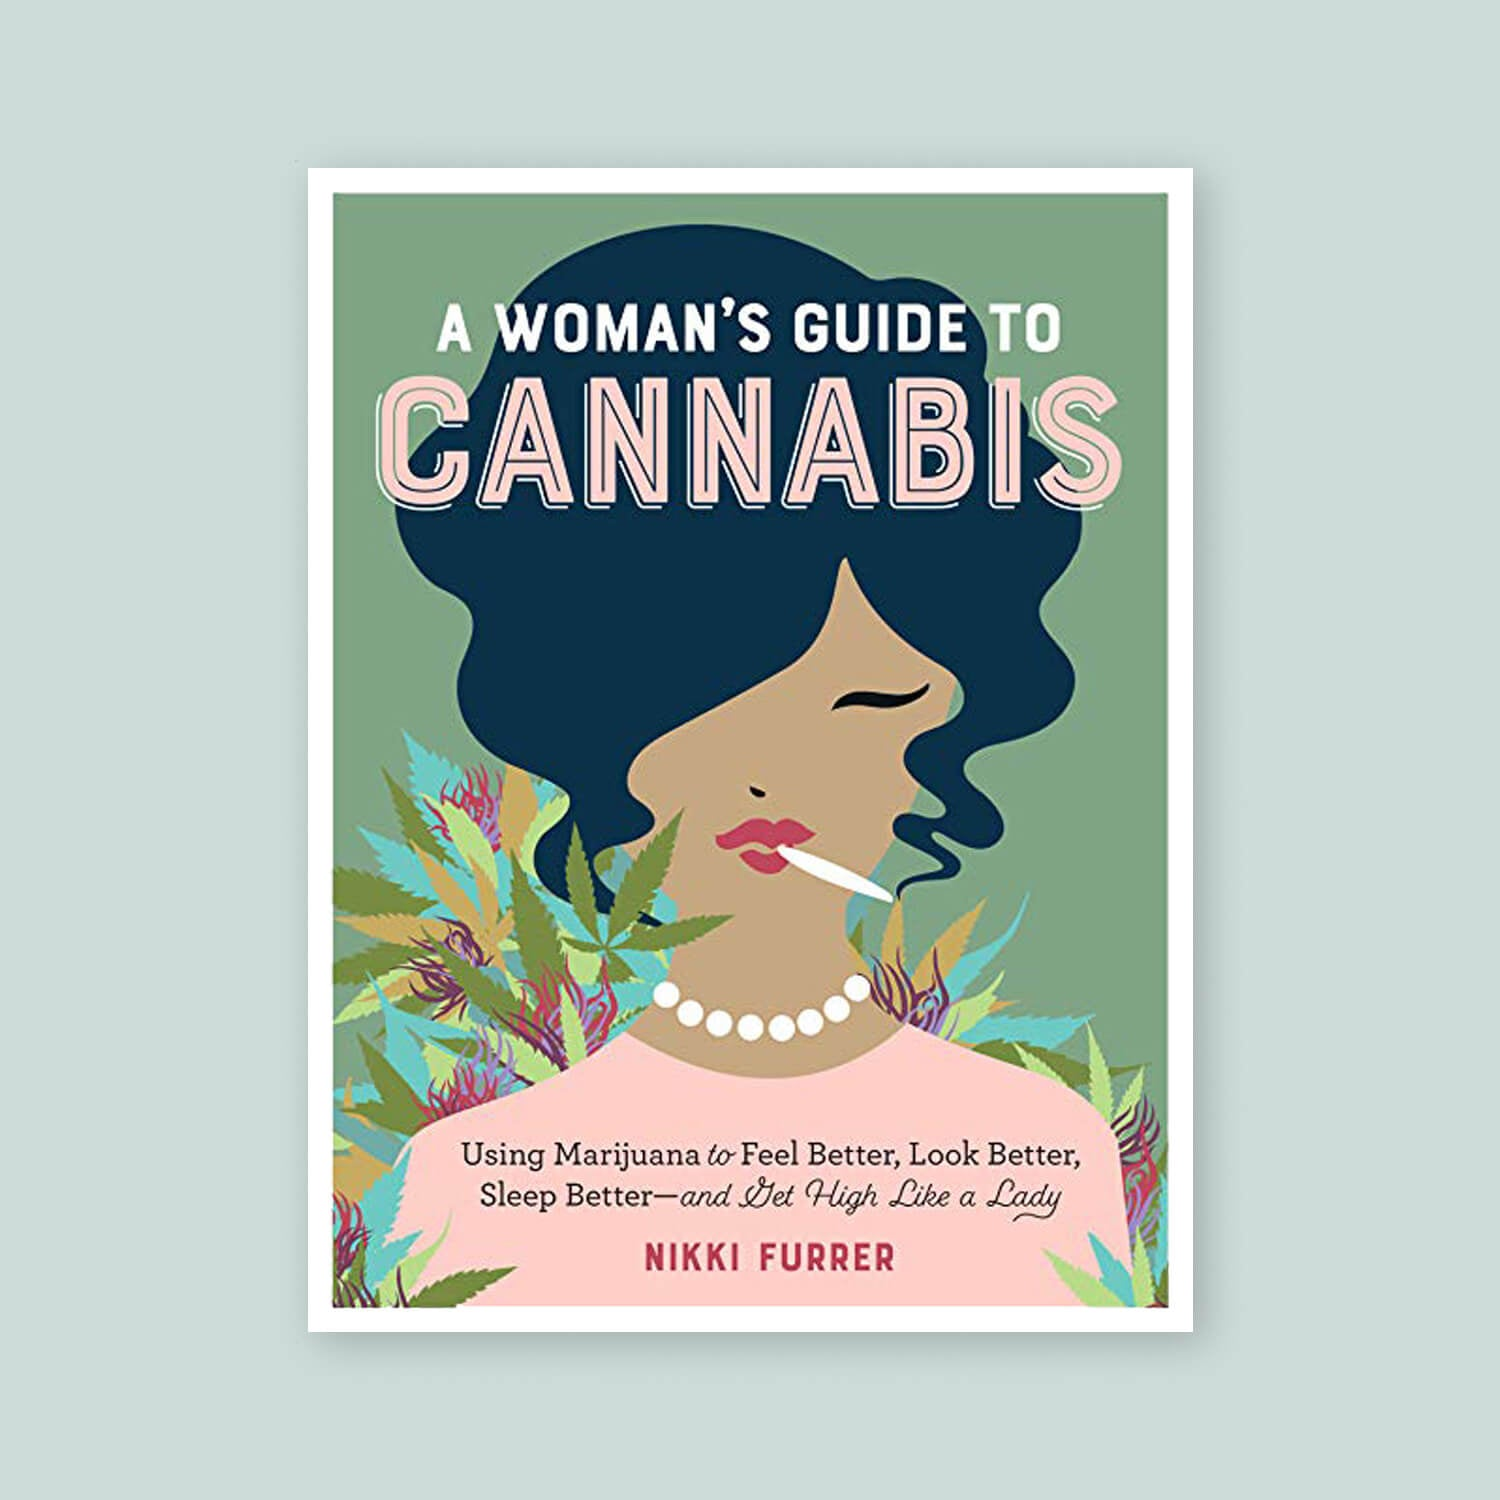 A Woman's guide to cannabis by Nikki Furrer - Goldleaf Bookshelf